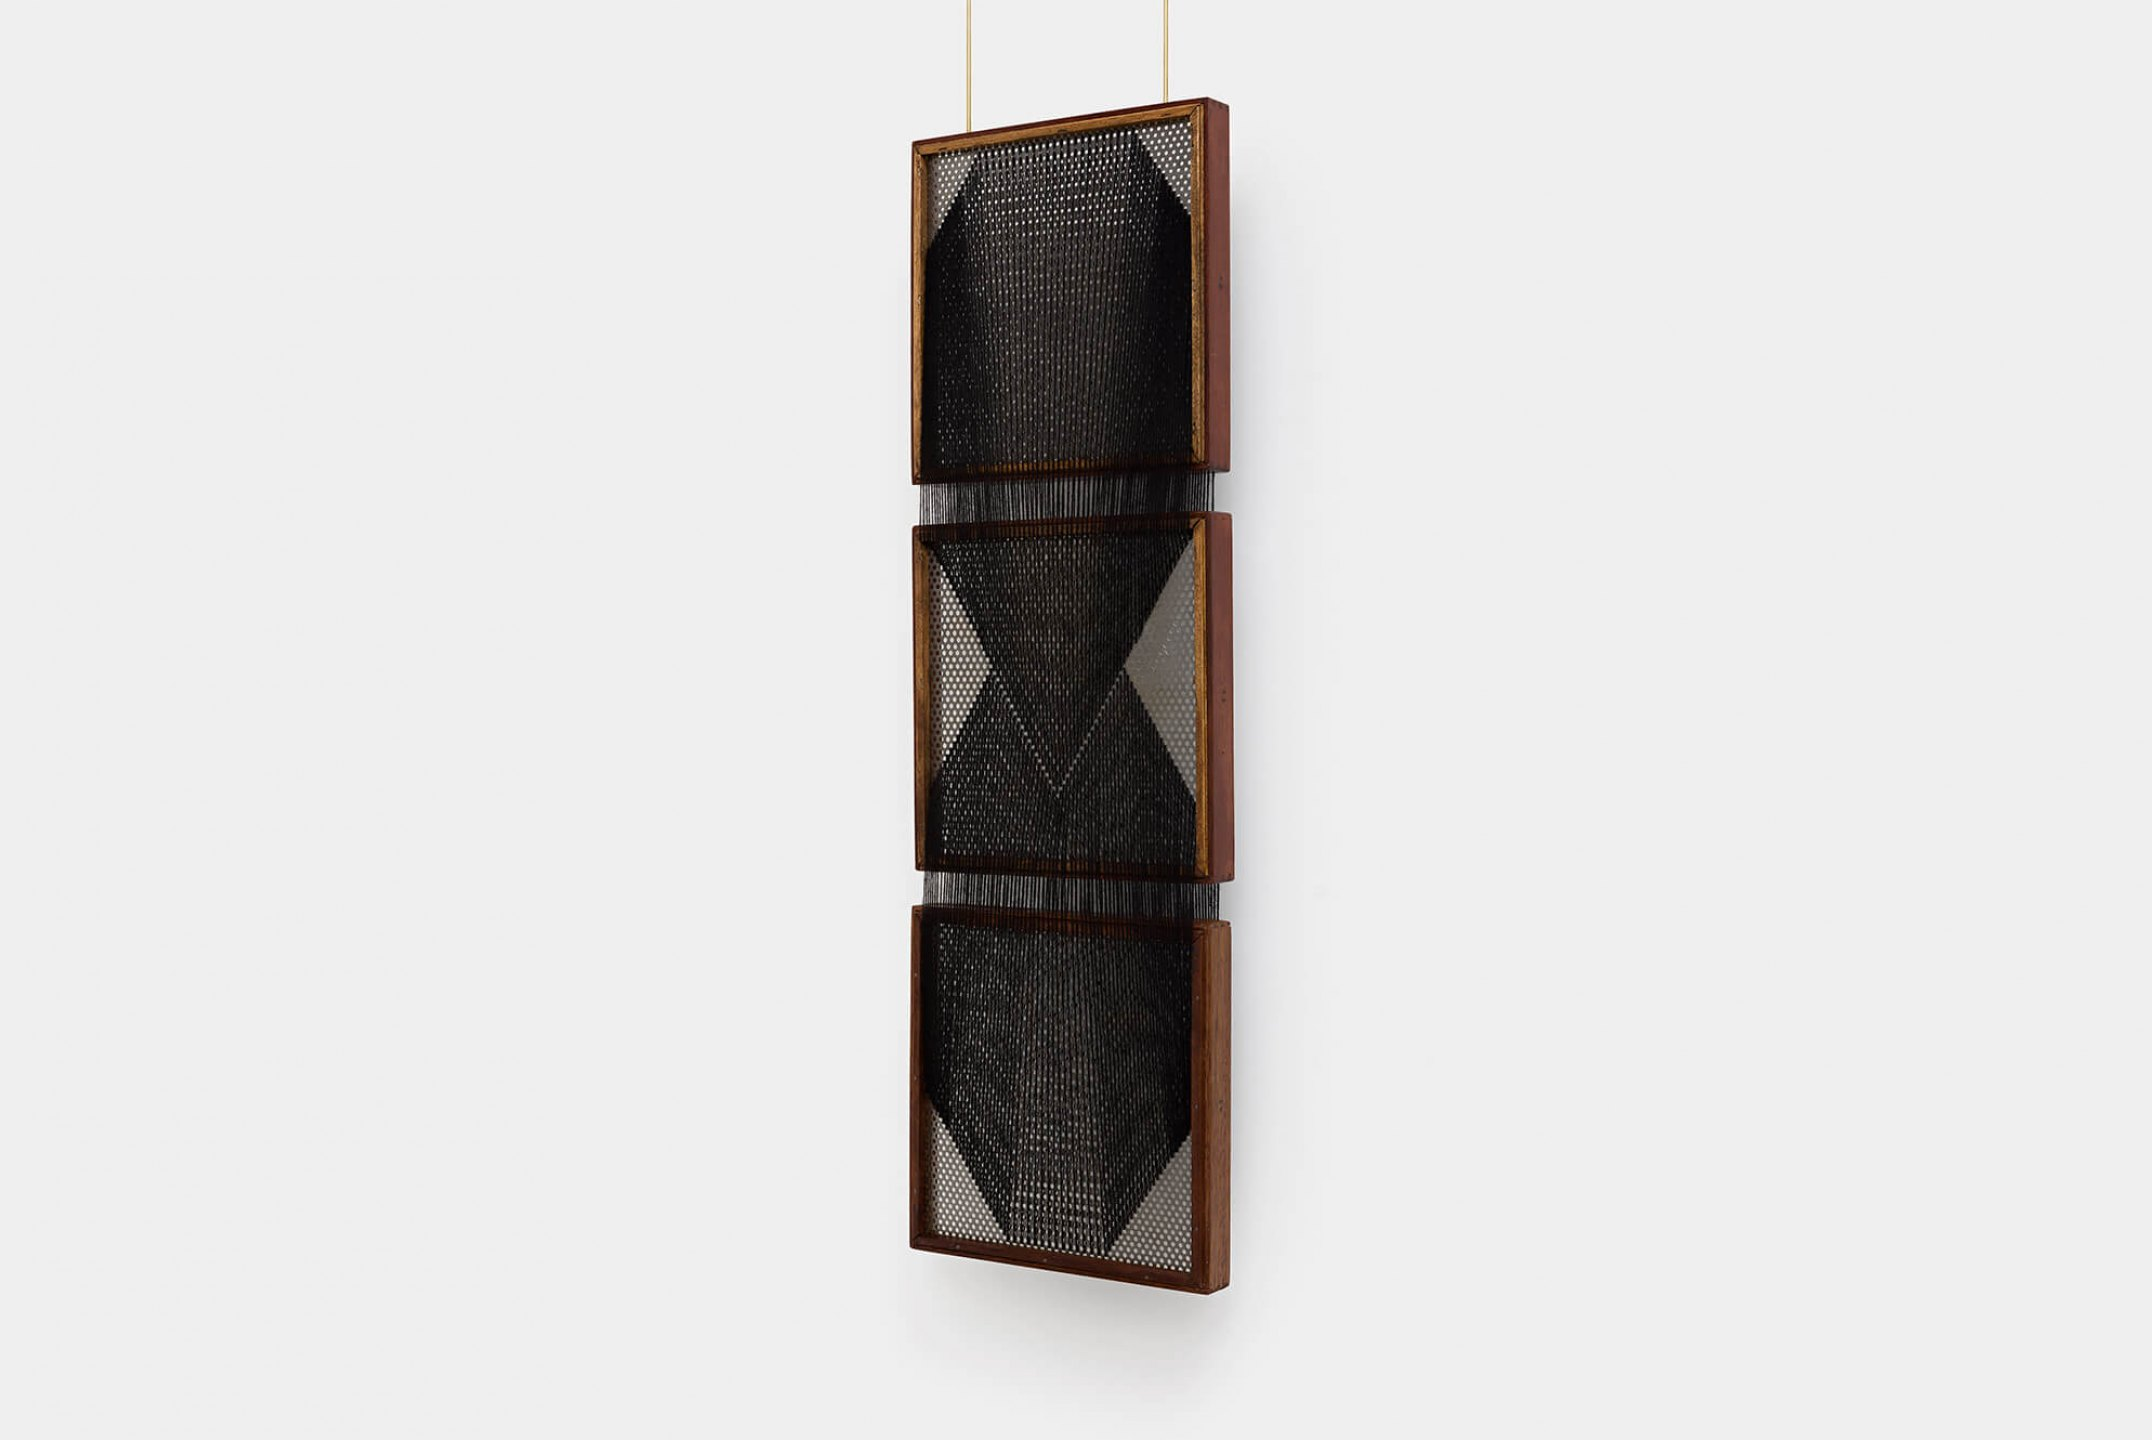 Paloma Bosquê, <em>On provisory interaction,</em> 2015, coffee sieve, wool and brass rods, 97 × 30 cm - Mendes Wood DM